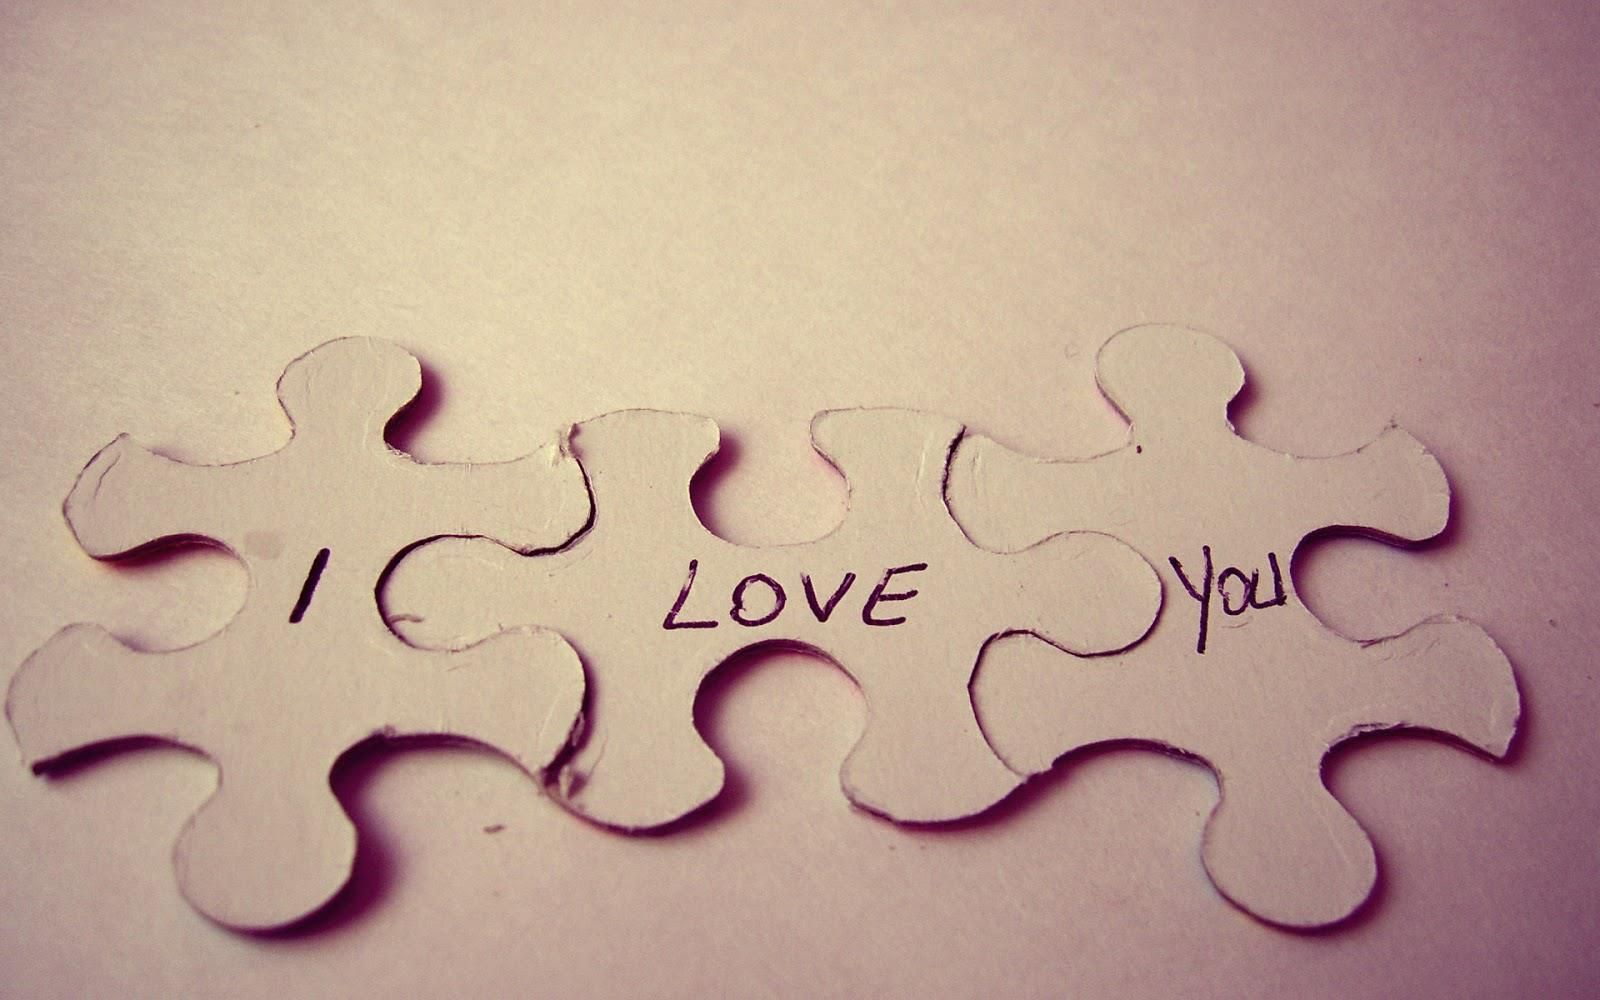 Cute Puzzle Piece Love Quotes Thousands Of Inspiration Quotes